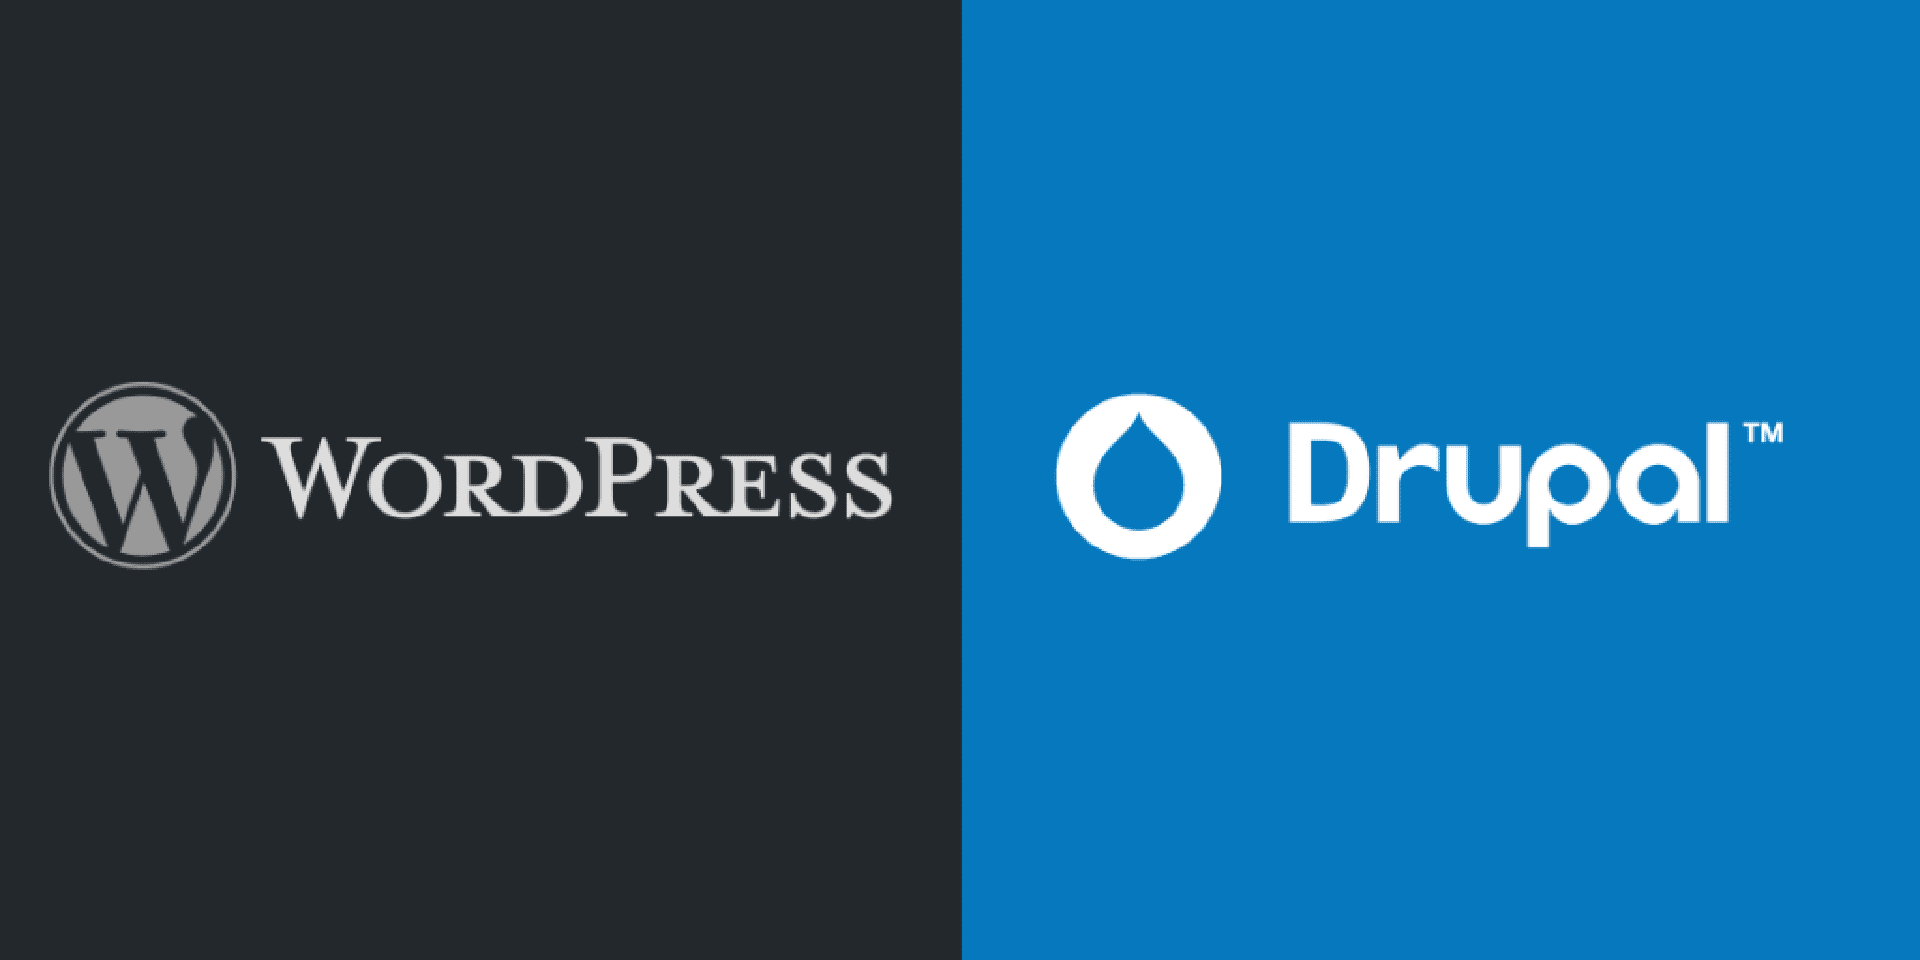 is-drupal-too-complicated-for-your-website-switching-to-wordpress-might-be-a-good-move-to-keep.png